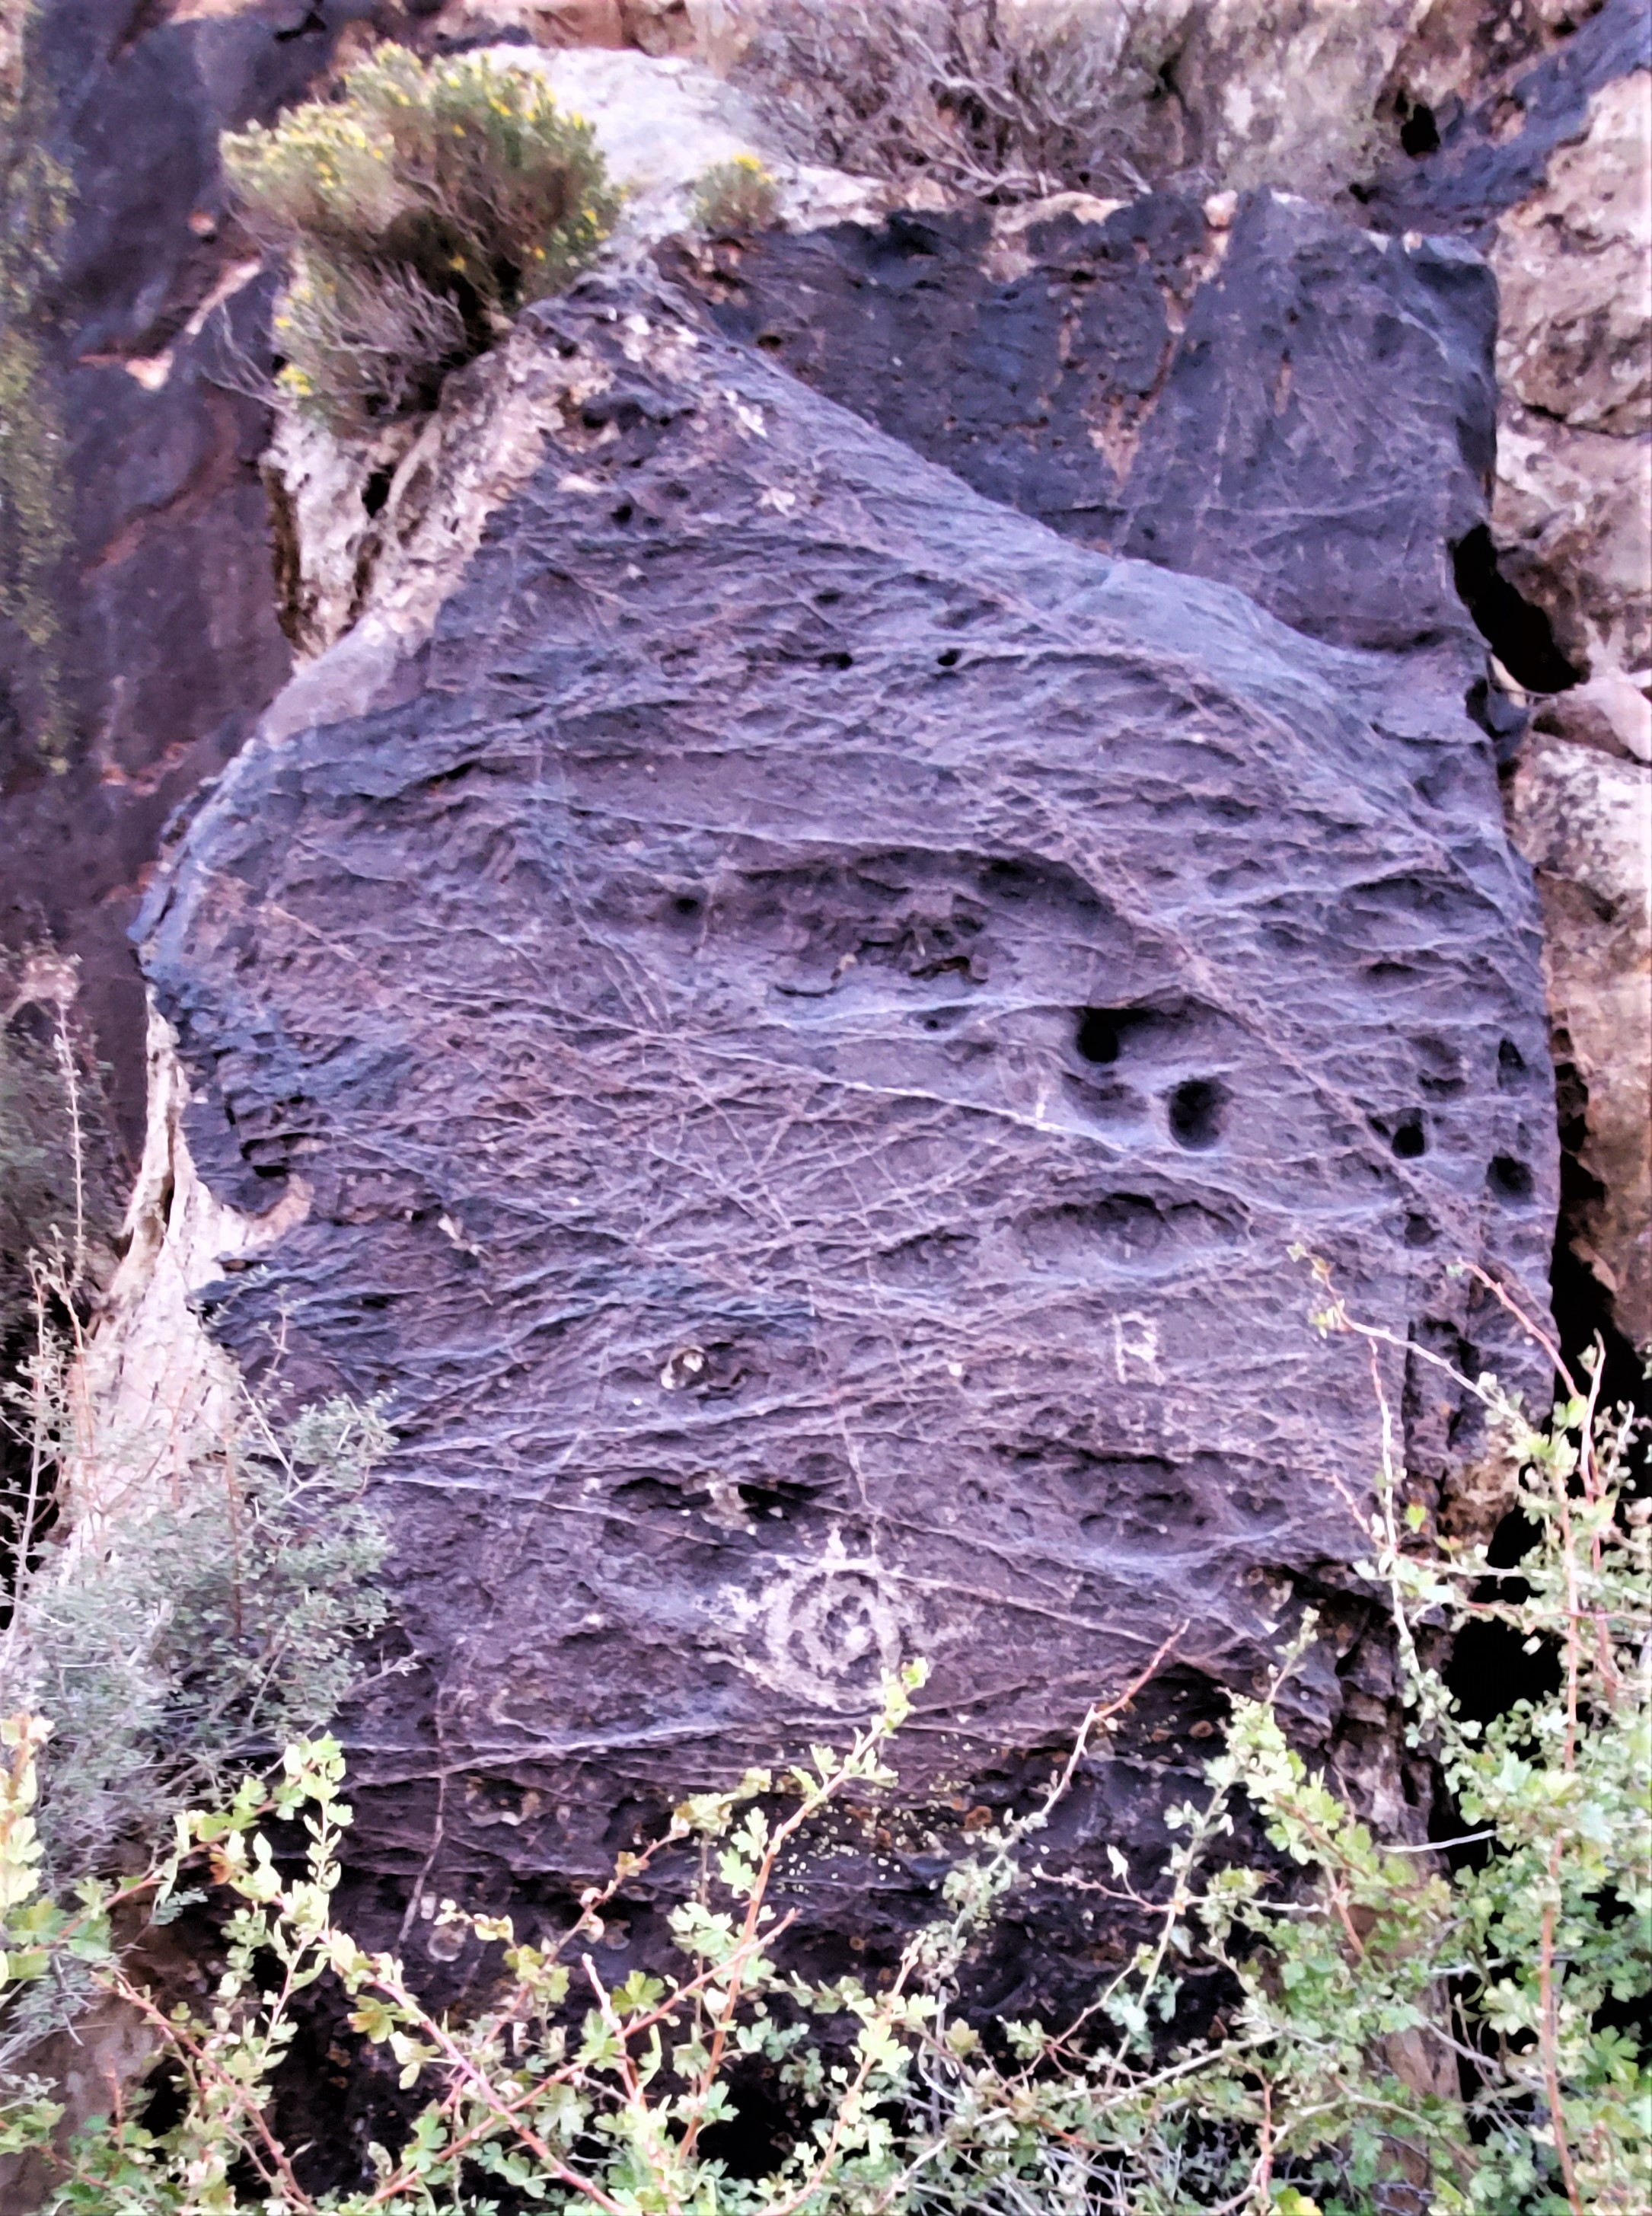 What appears to be an eye carved into the hard stone of Parowan Gap